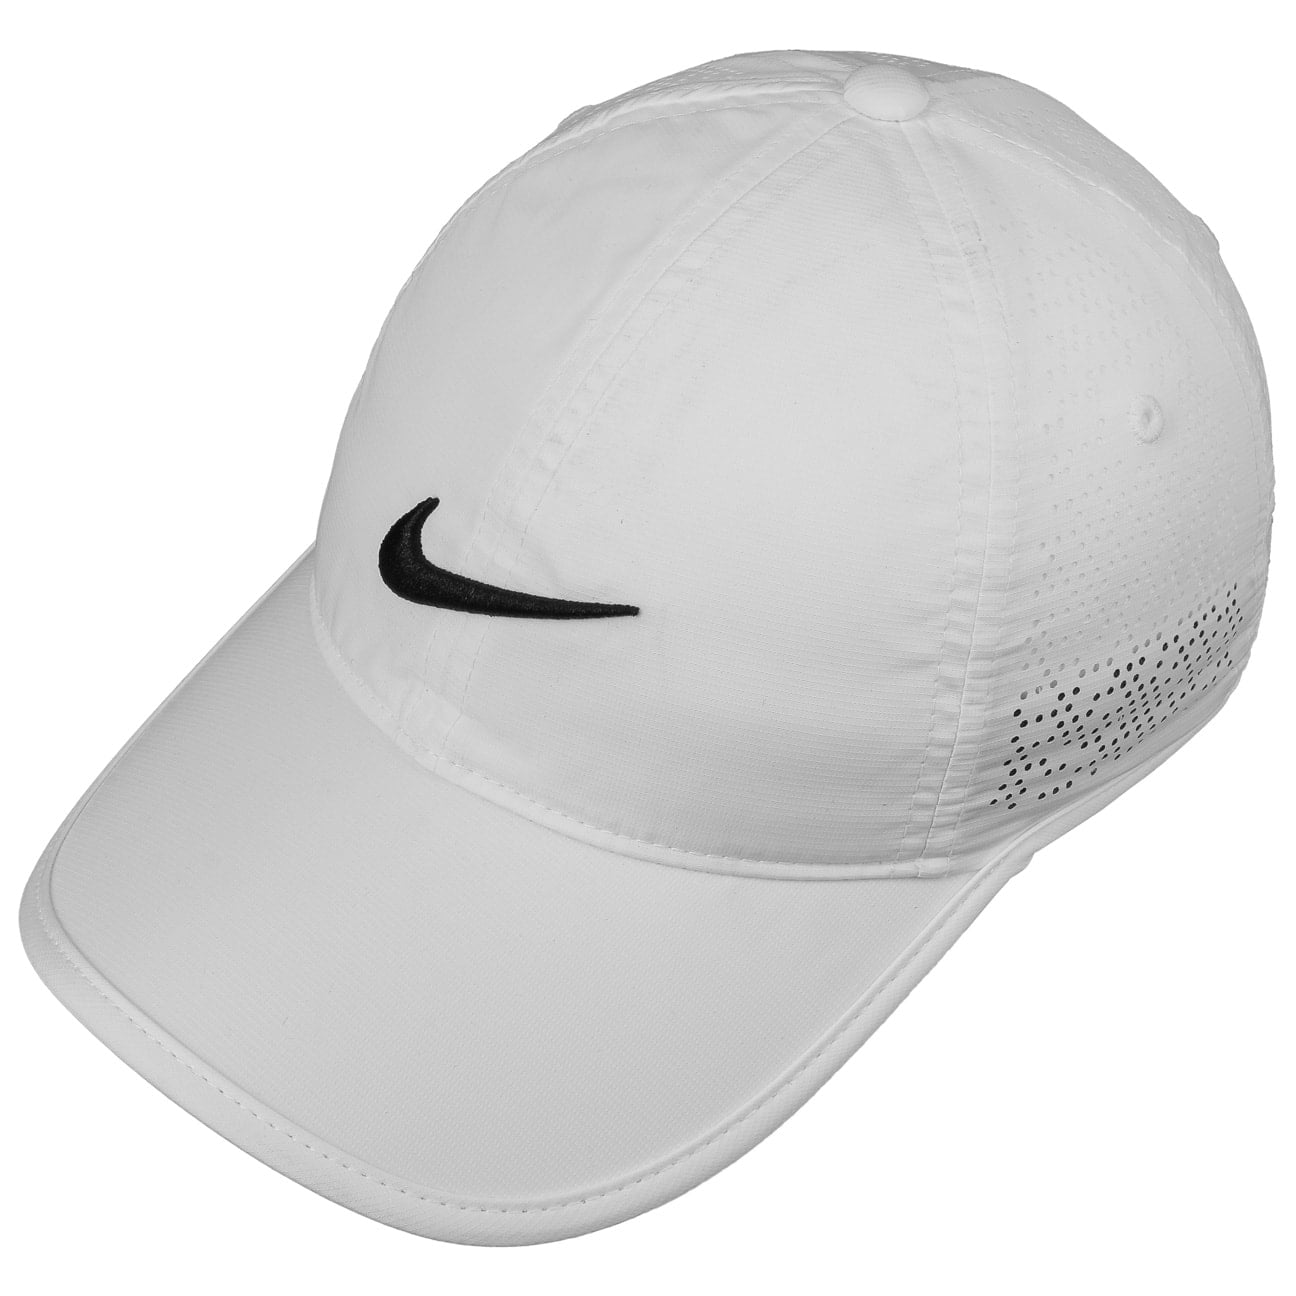 d70142fa9c2 ... Swoosh Perforation Cap by Nike - white 2 ...